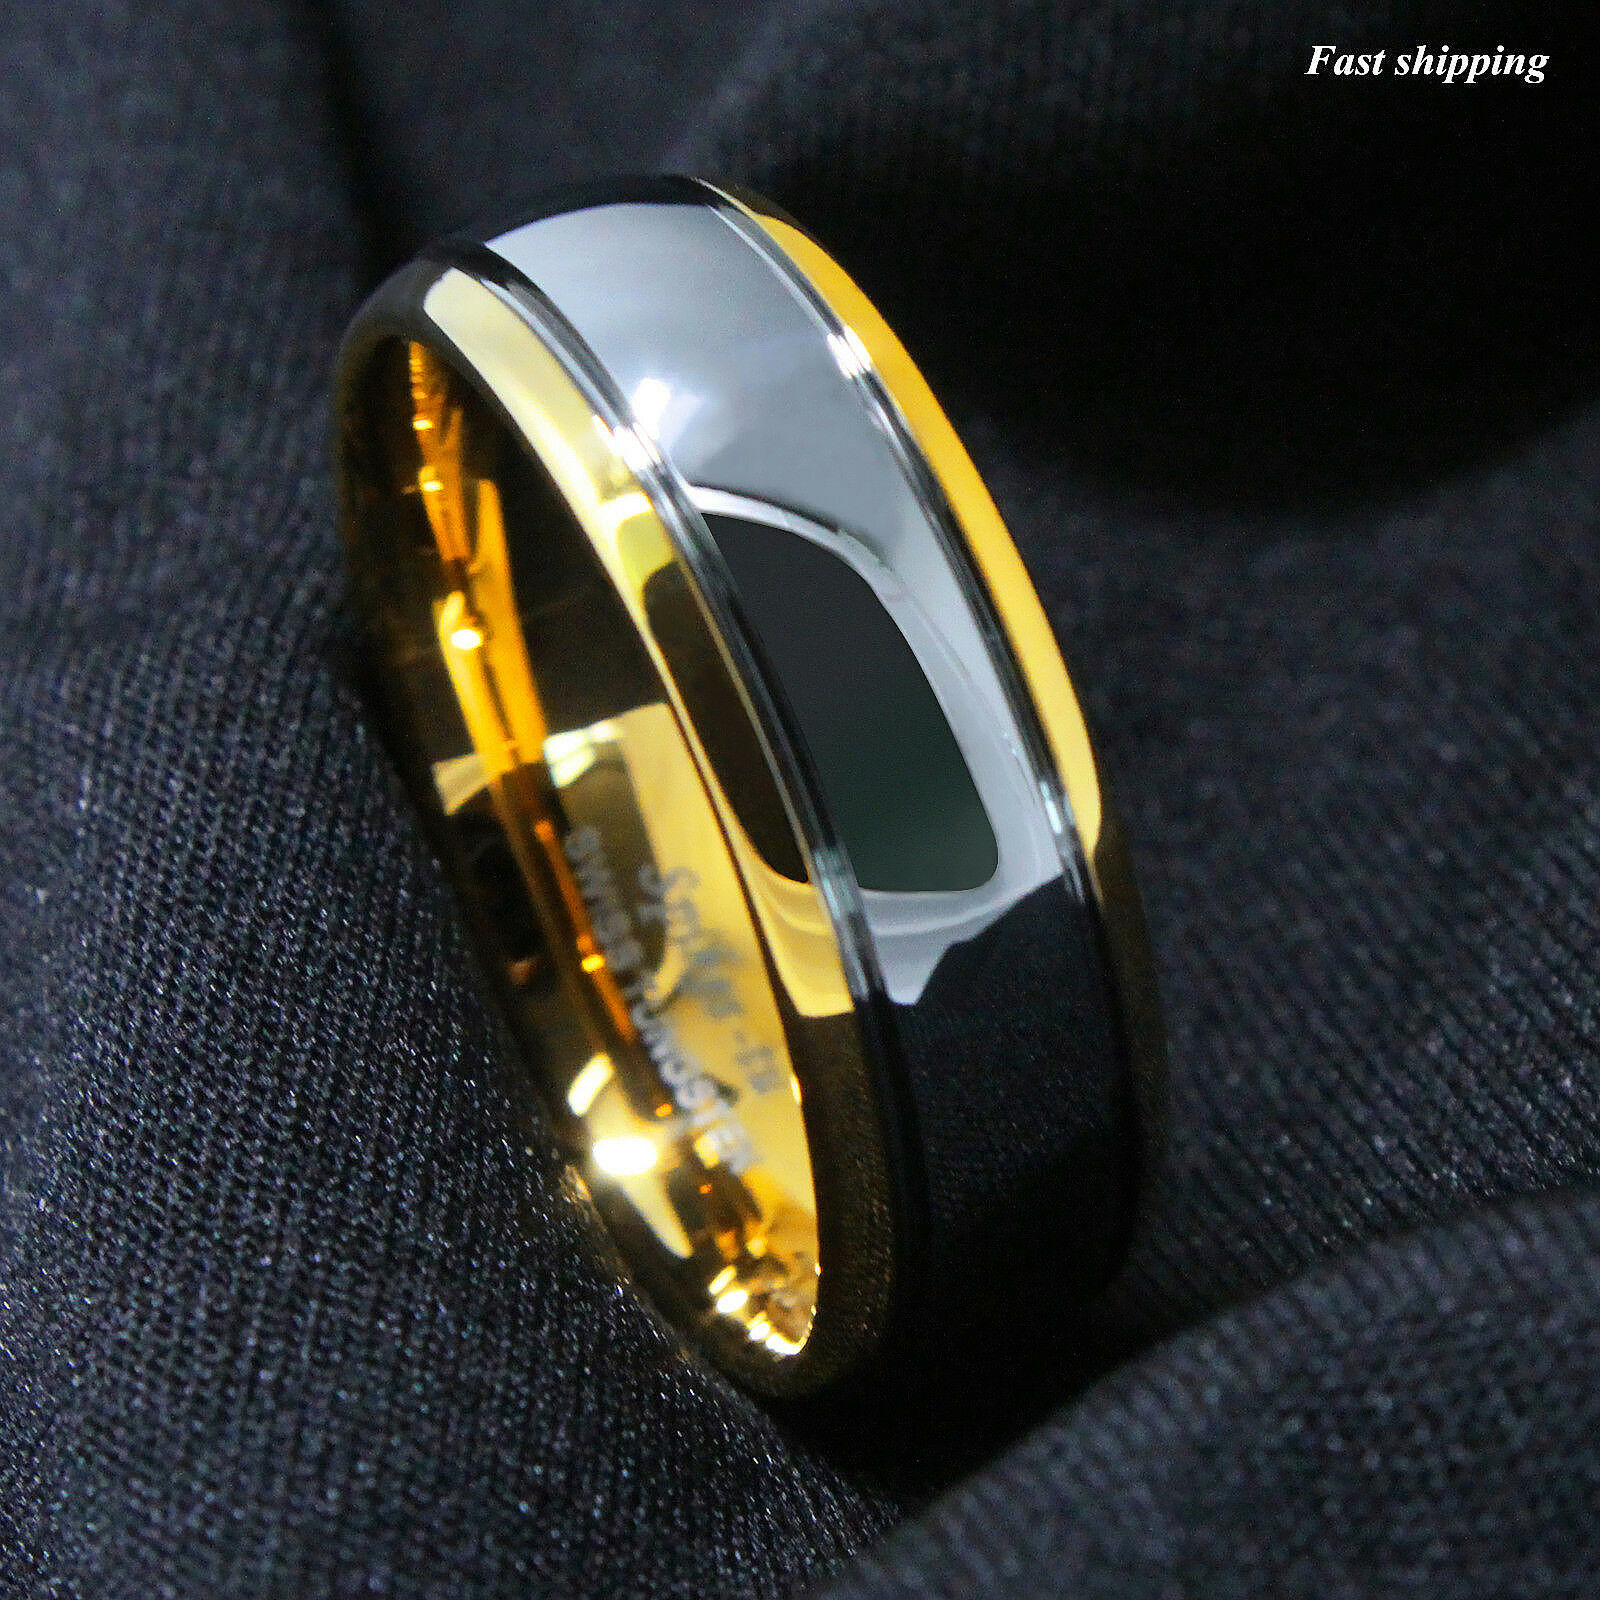 Ring - 8/6mm Dome 18K Gold Silver Mens Tungsten Ring Wedding Band Bridal ATOP Jewelry